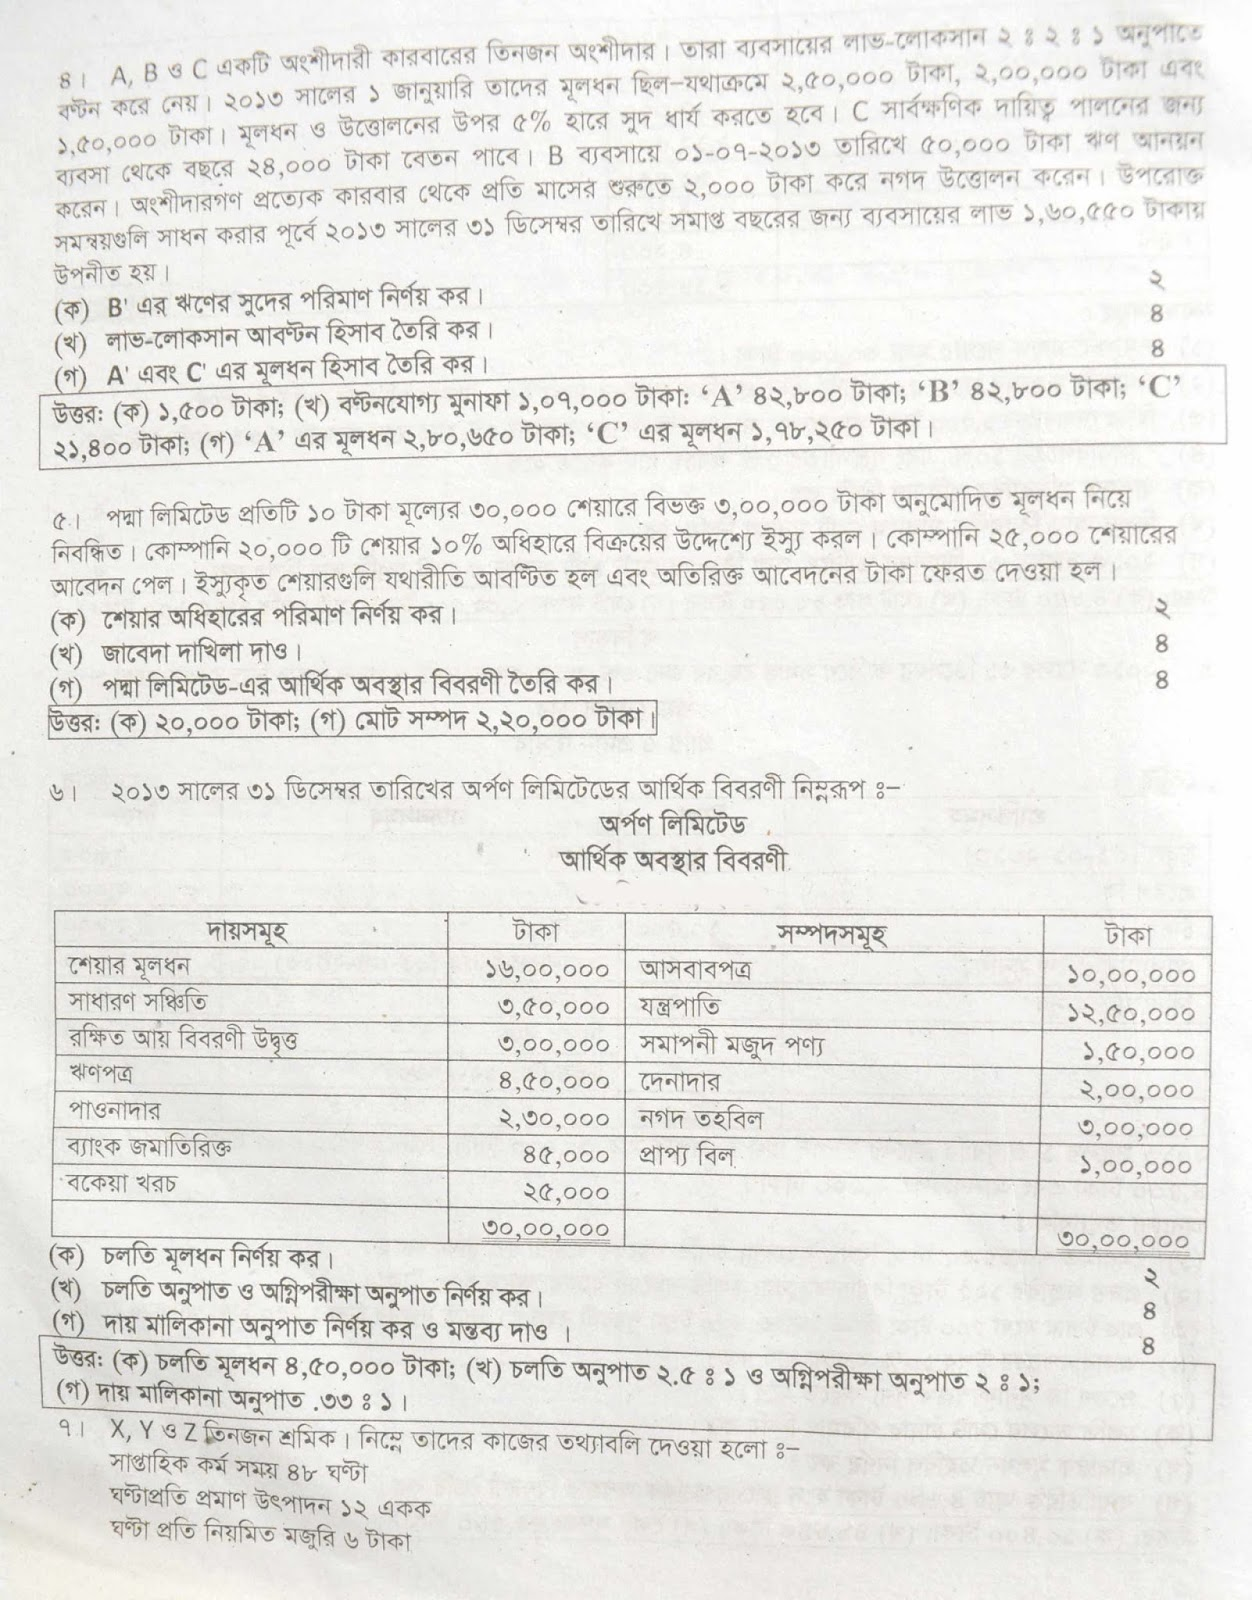 hsc Accounting 2nd Paper suggestion, exam question paper, model question, mcq question, question pattern, preparation for dhaka board, all boards